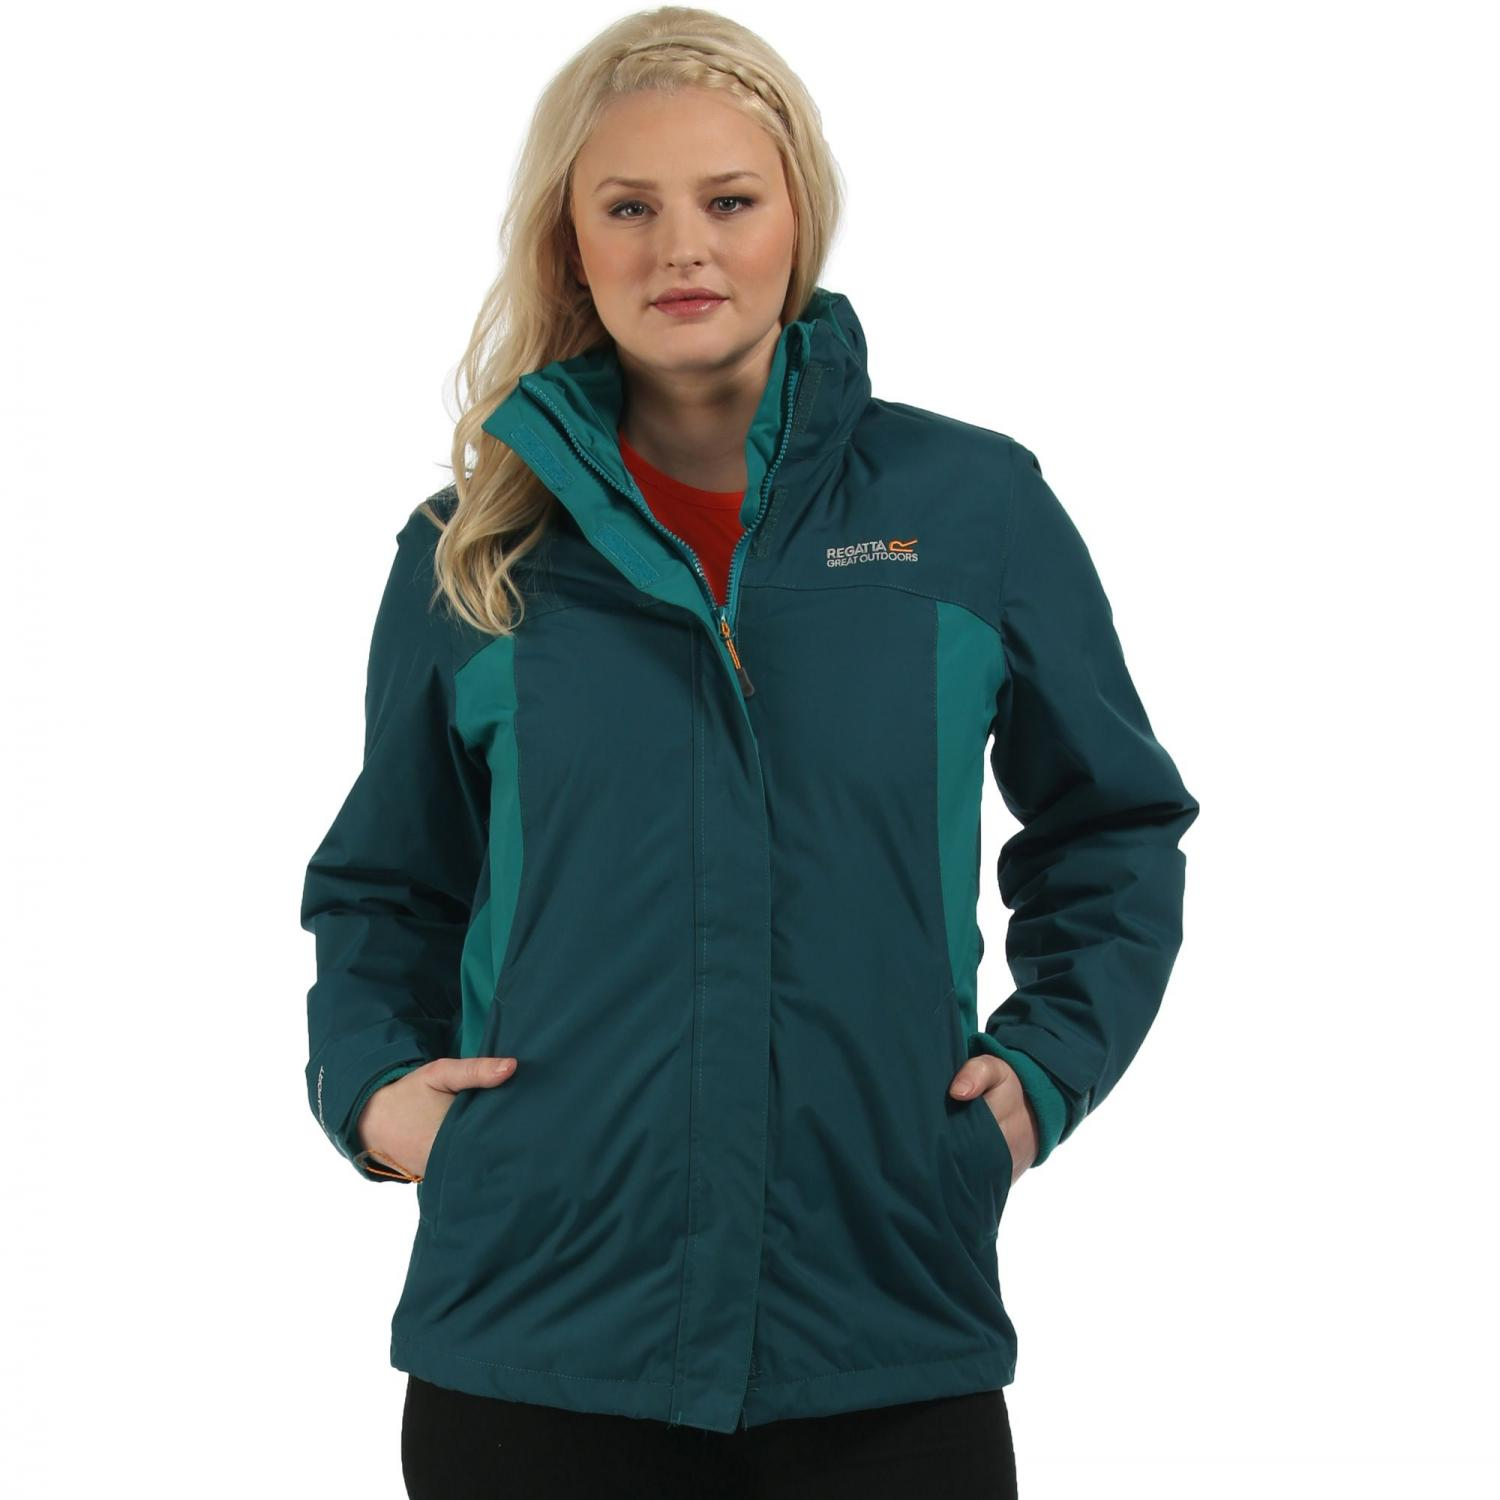 Preya III 3 in 1 Jacket Deep Teal Lake